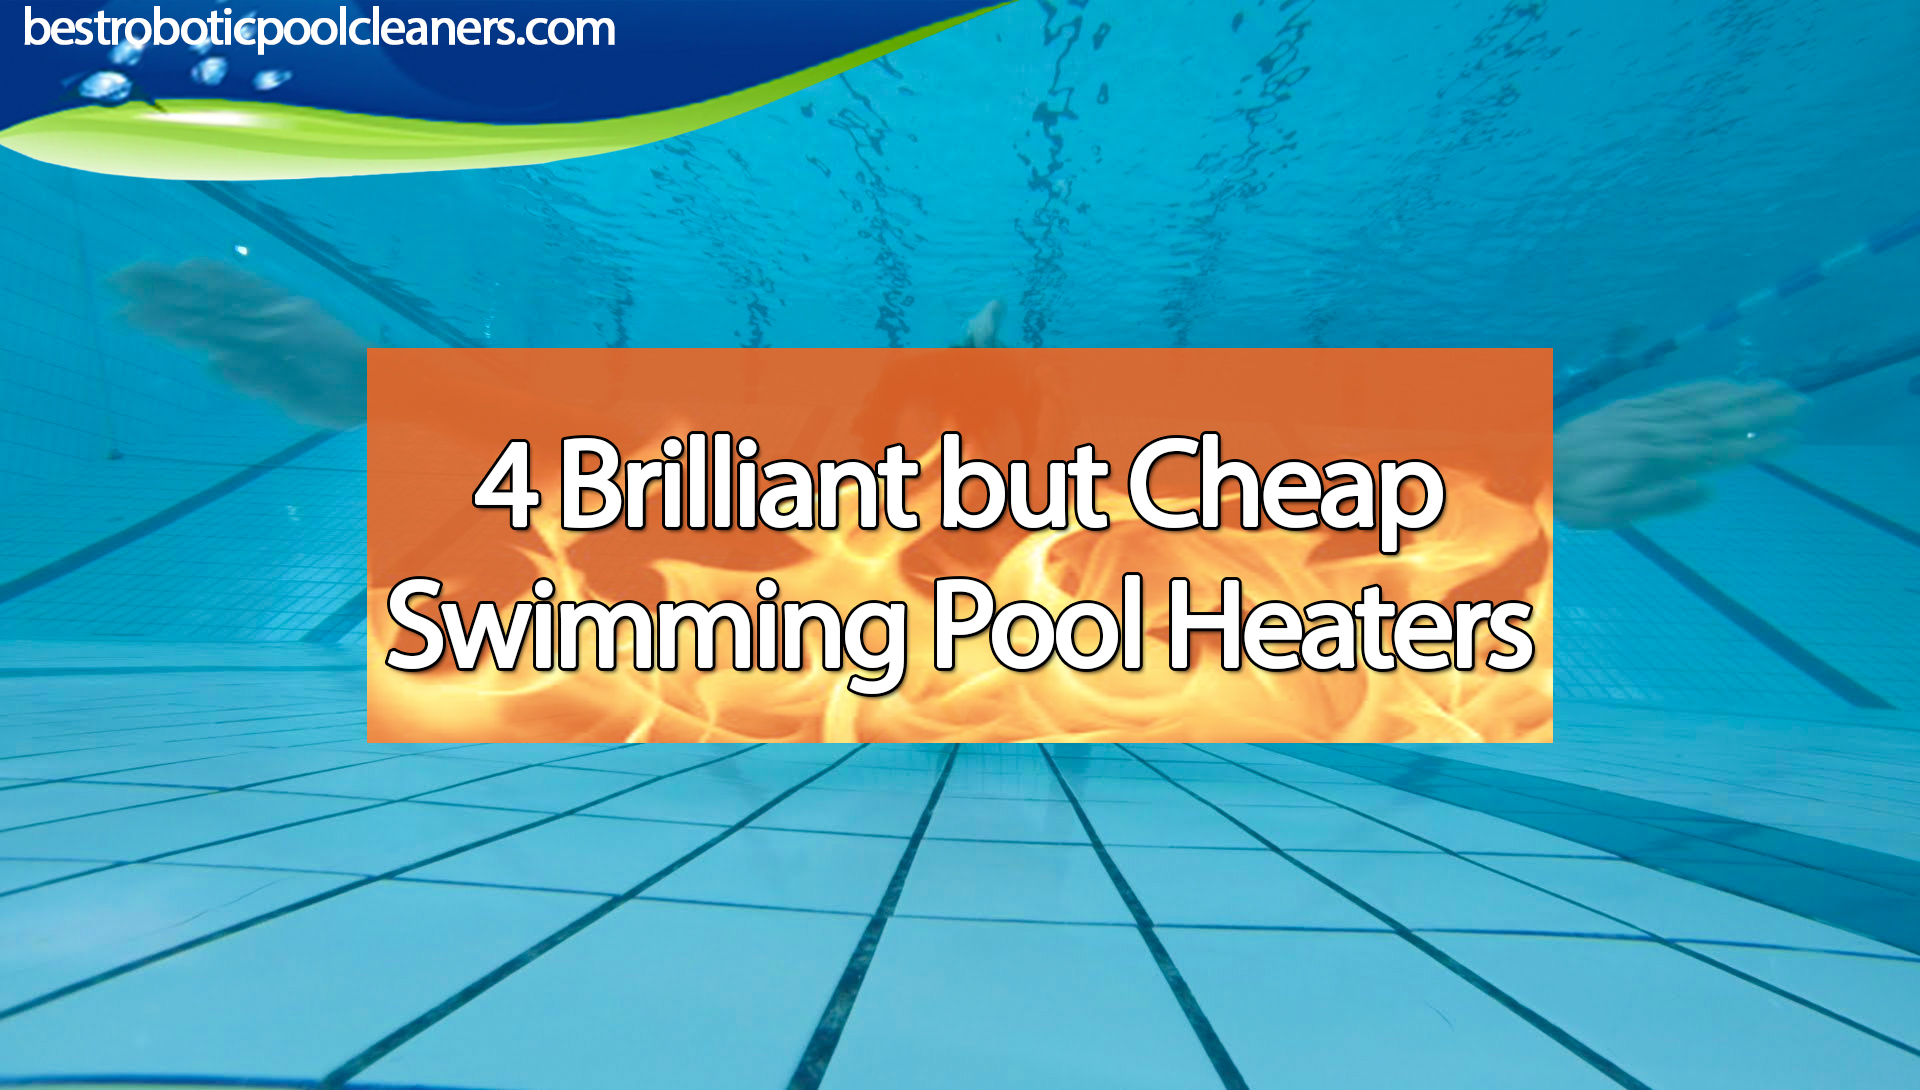 4 Brilliant but Cheap Swimming Pool Heaters - Best Robotic ...